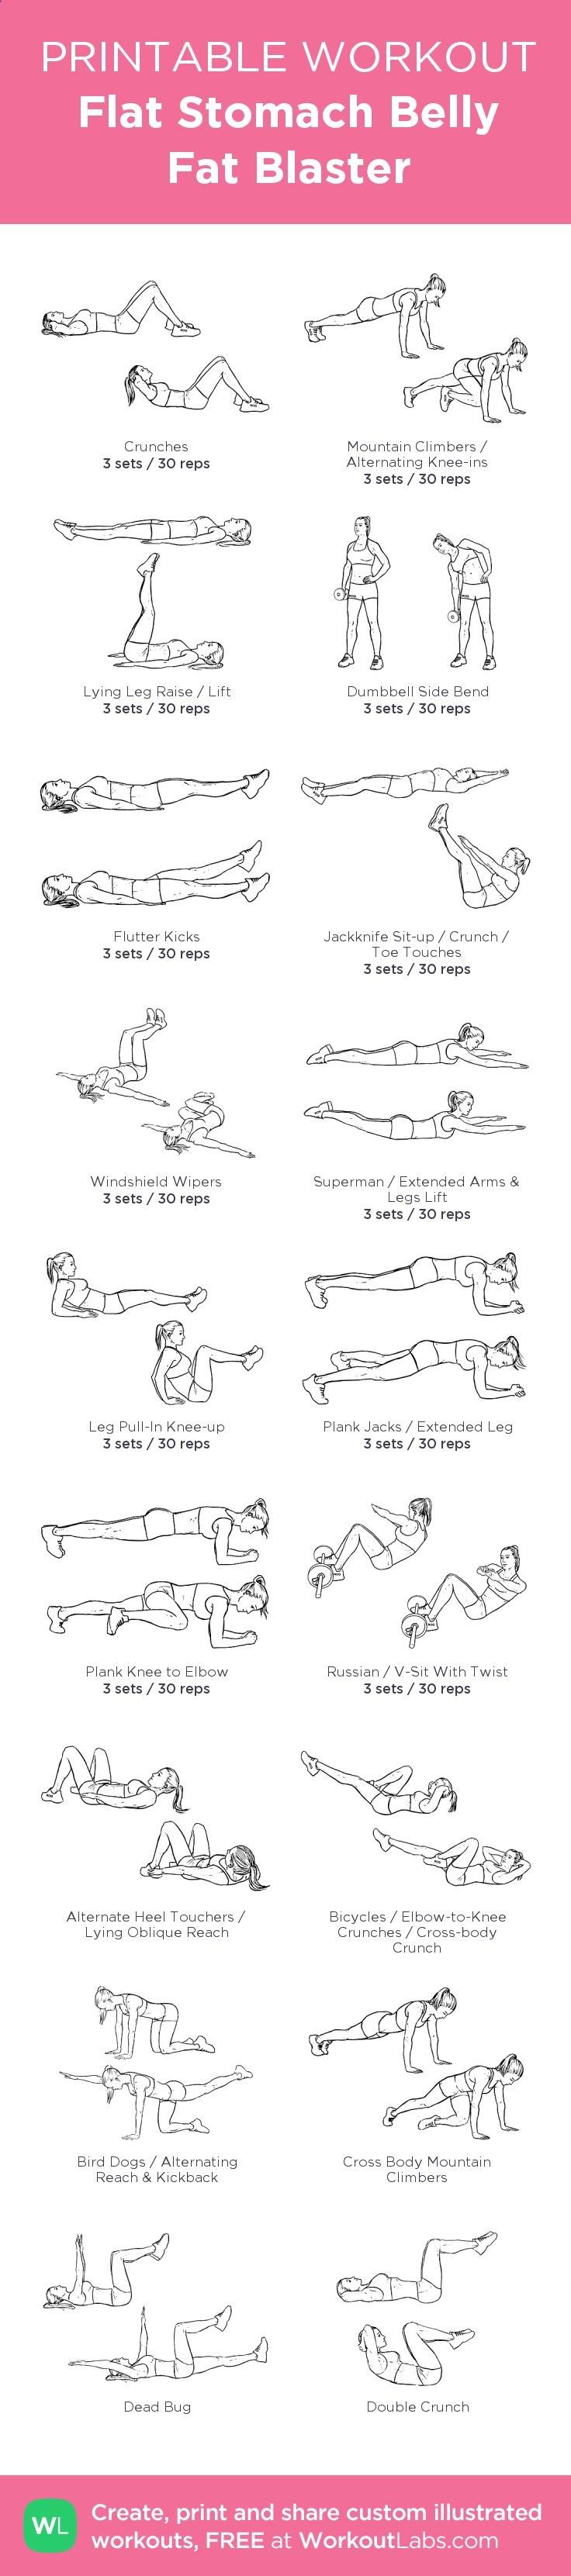 See more here ► www.youtube.com/... Tags: how to lose belly fat naturally - Bethany's Flat Stomach Belly Fat Blaster: my visual workout created at WorkoutLabs.com • Click through to customize and download as a FREE PDF! #customworkout